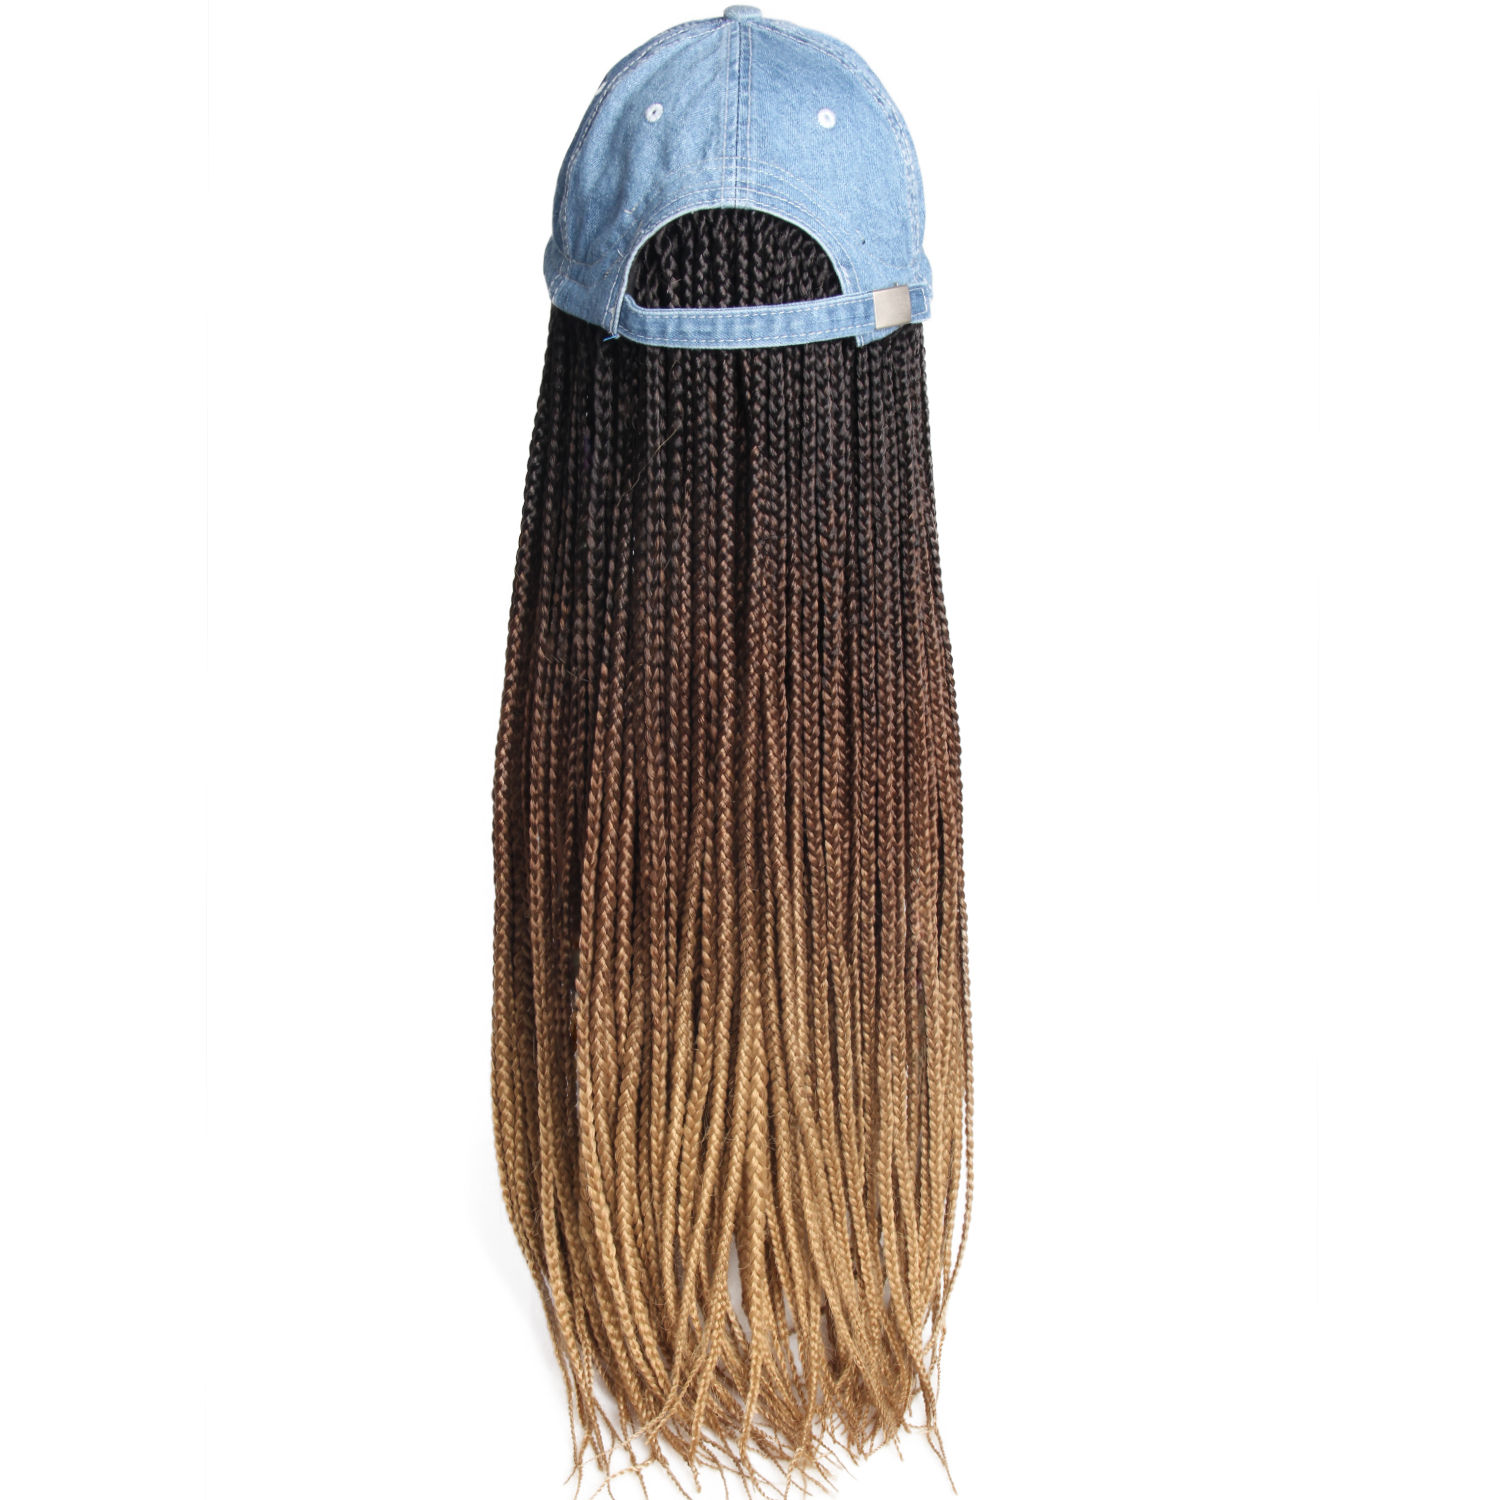 Synthetic braided hair human hair hat with wig for women